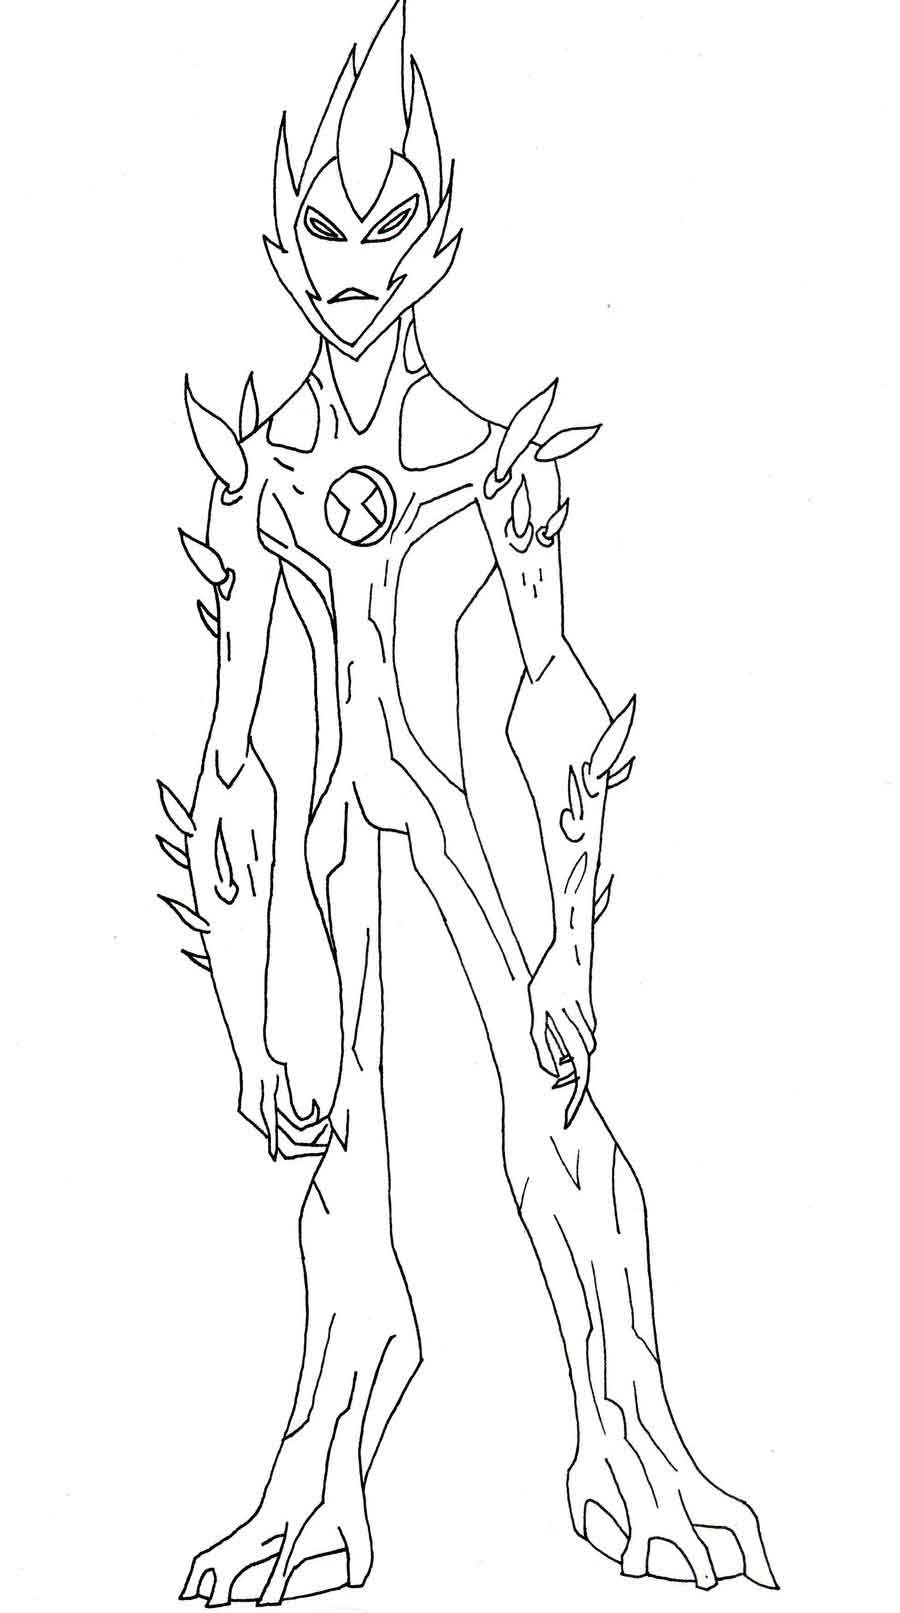 coloring pages of ben 10 aliens get this printable ben 10 coloring pages 9wchd coloring pages of ben aliens 10